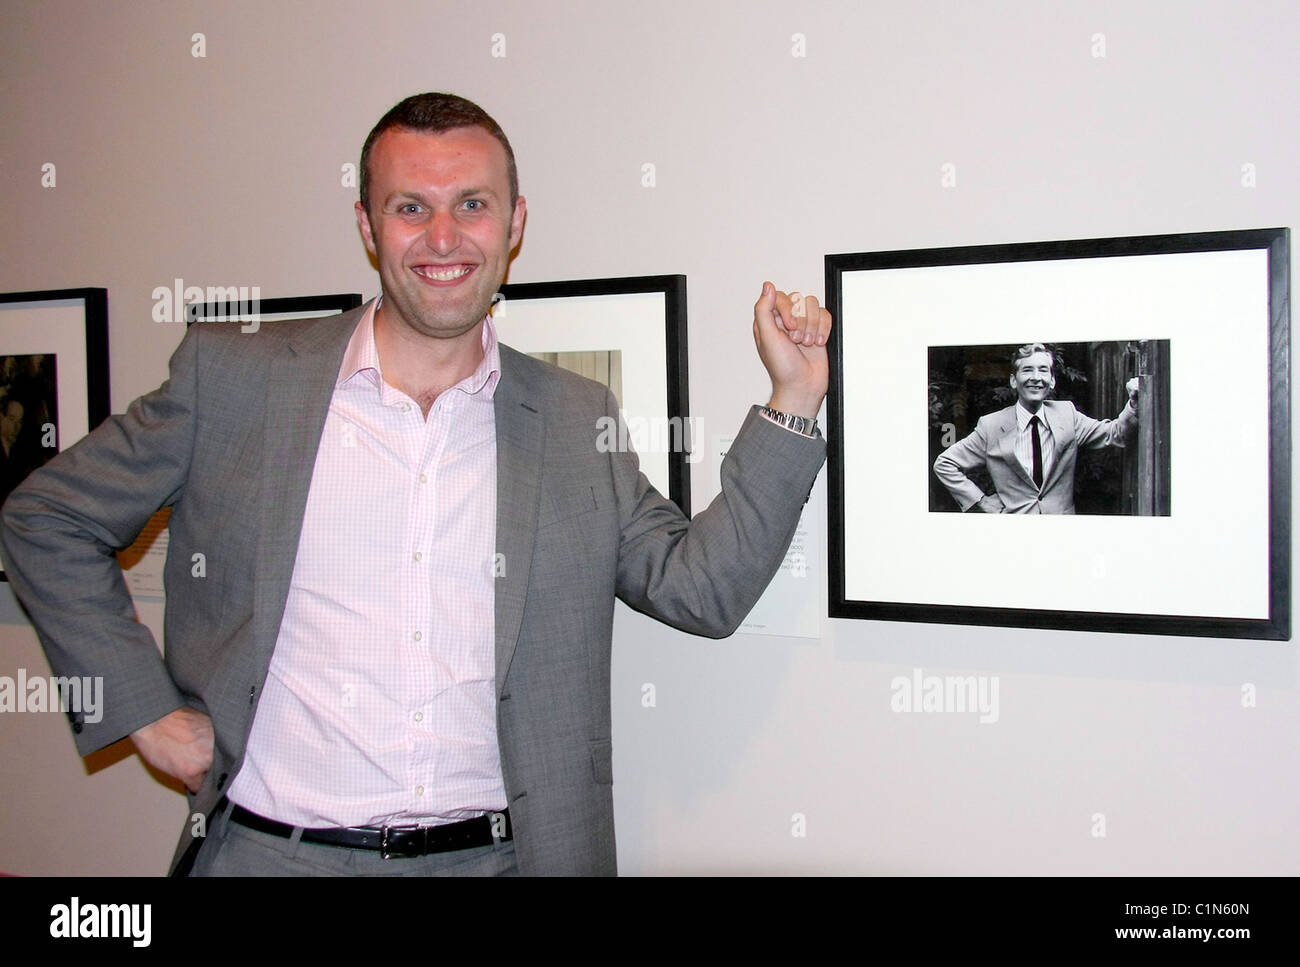 Gay pics gallery James Mcquillan Private View For Gay Icons At The National Portrait Gallery London England 30 06 09 Stock Photo Alamy